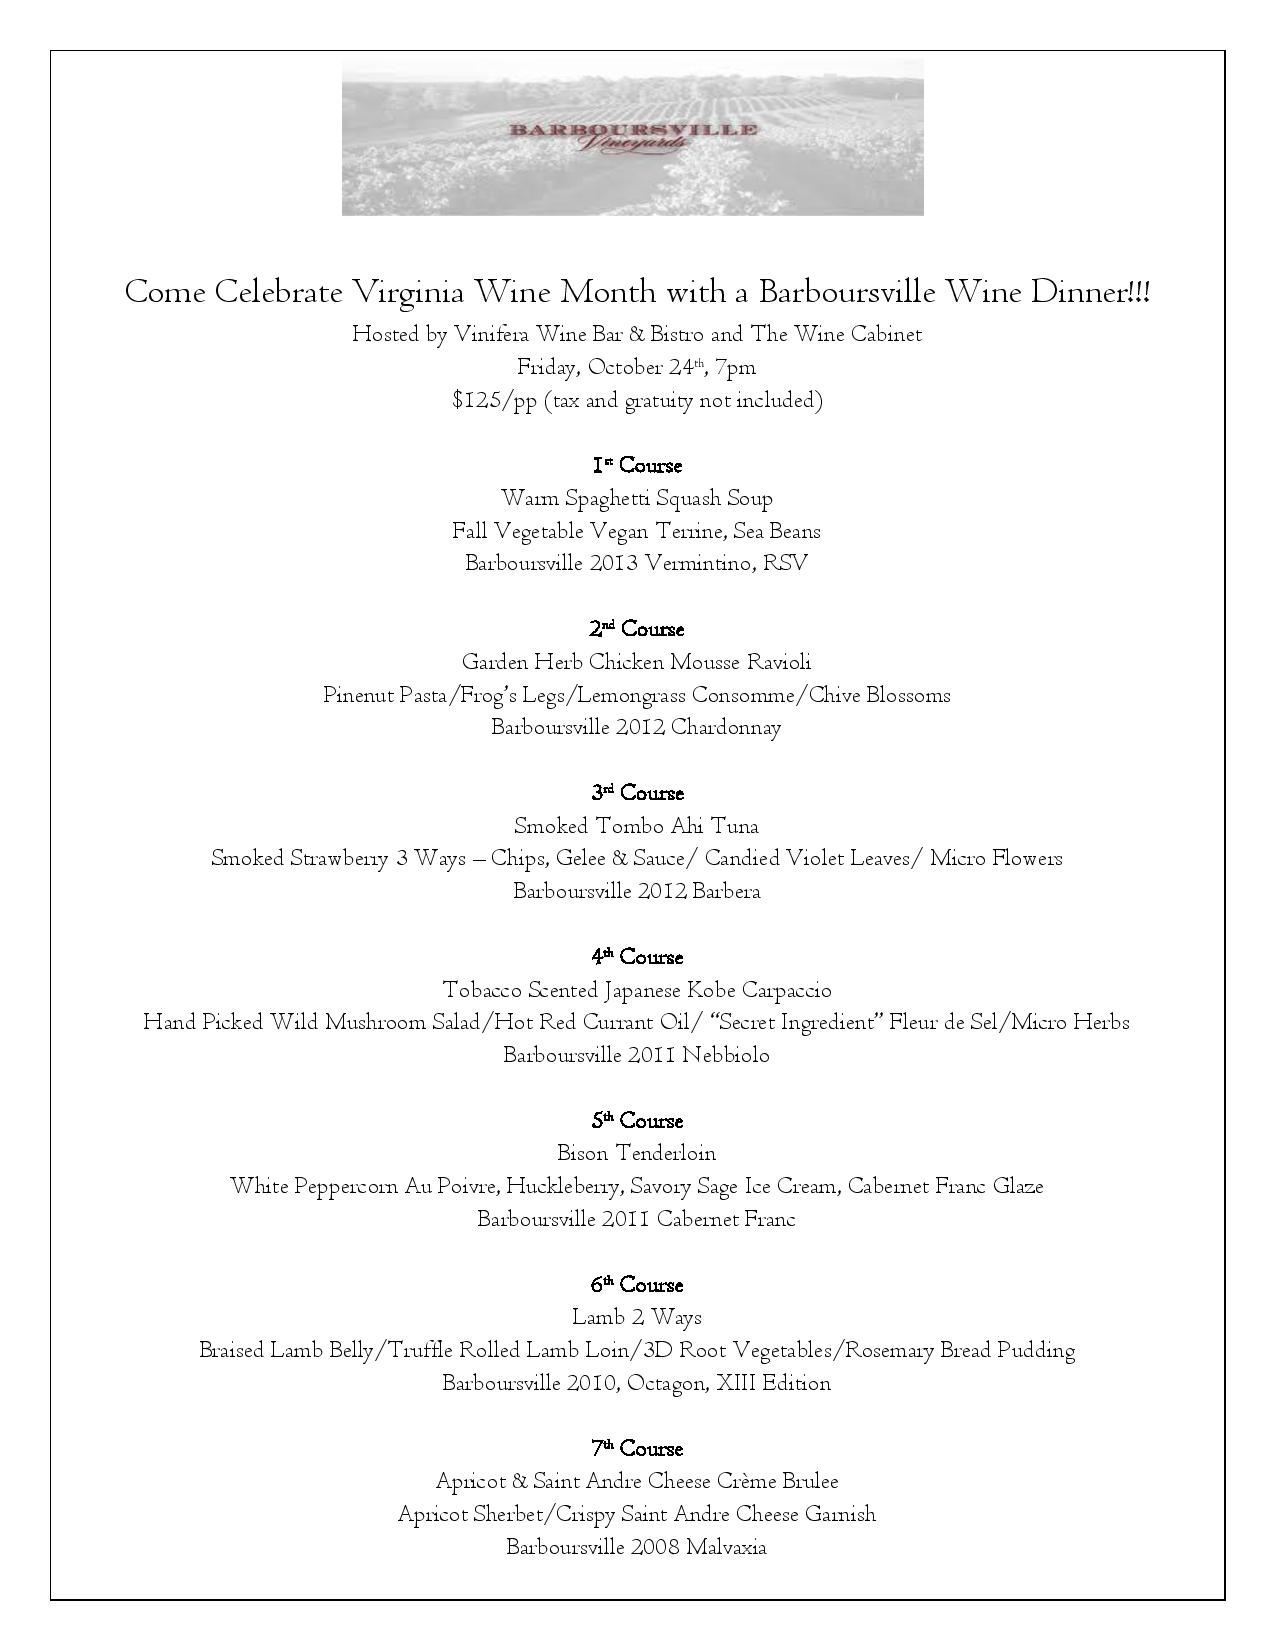 Barboursville wine dinner (1)-page-001.jpg